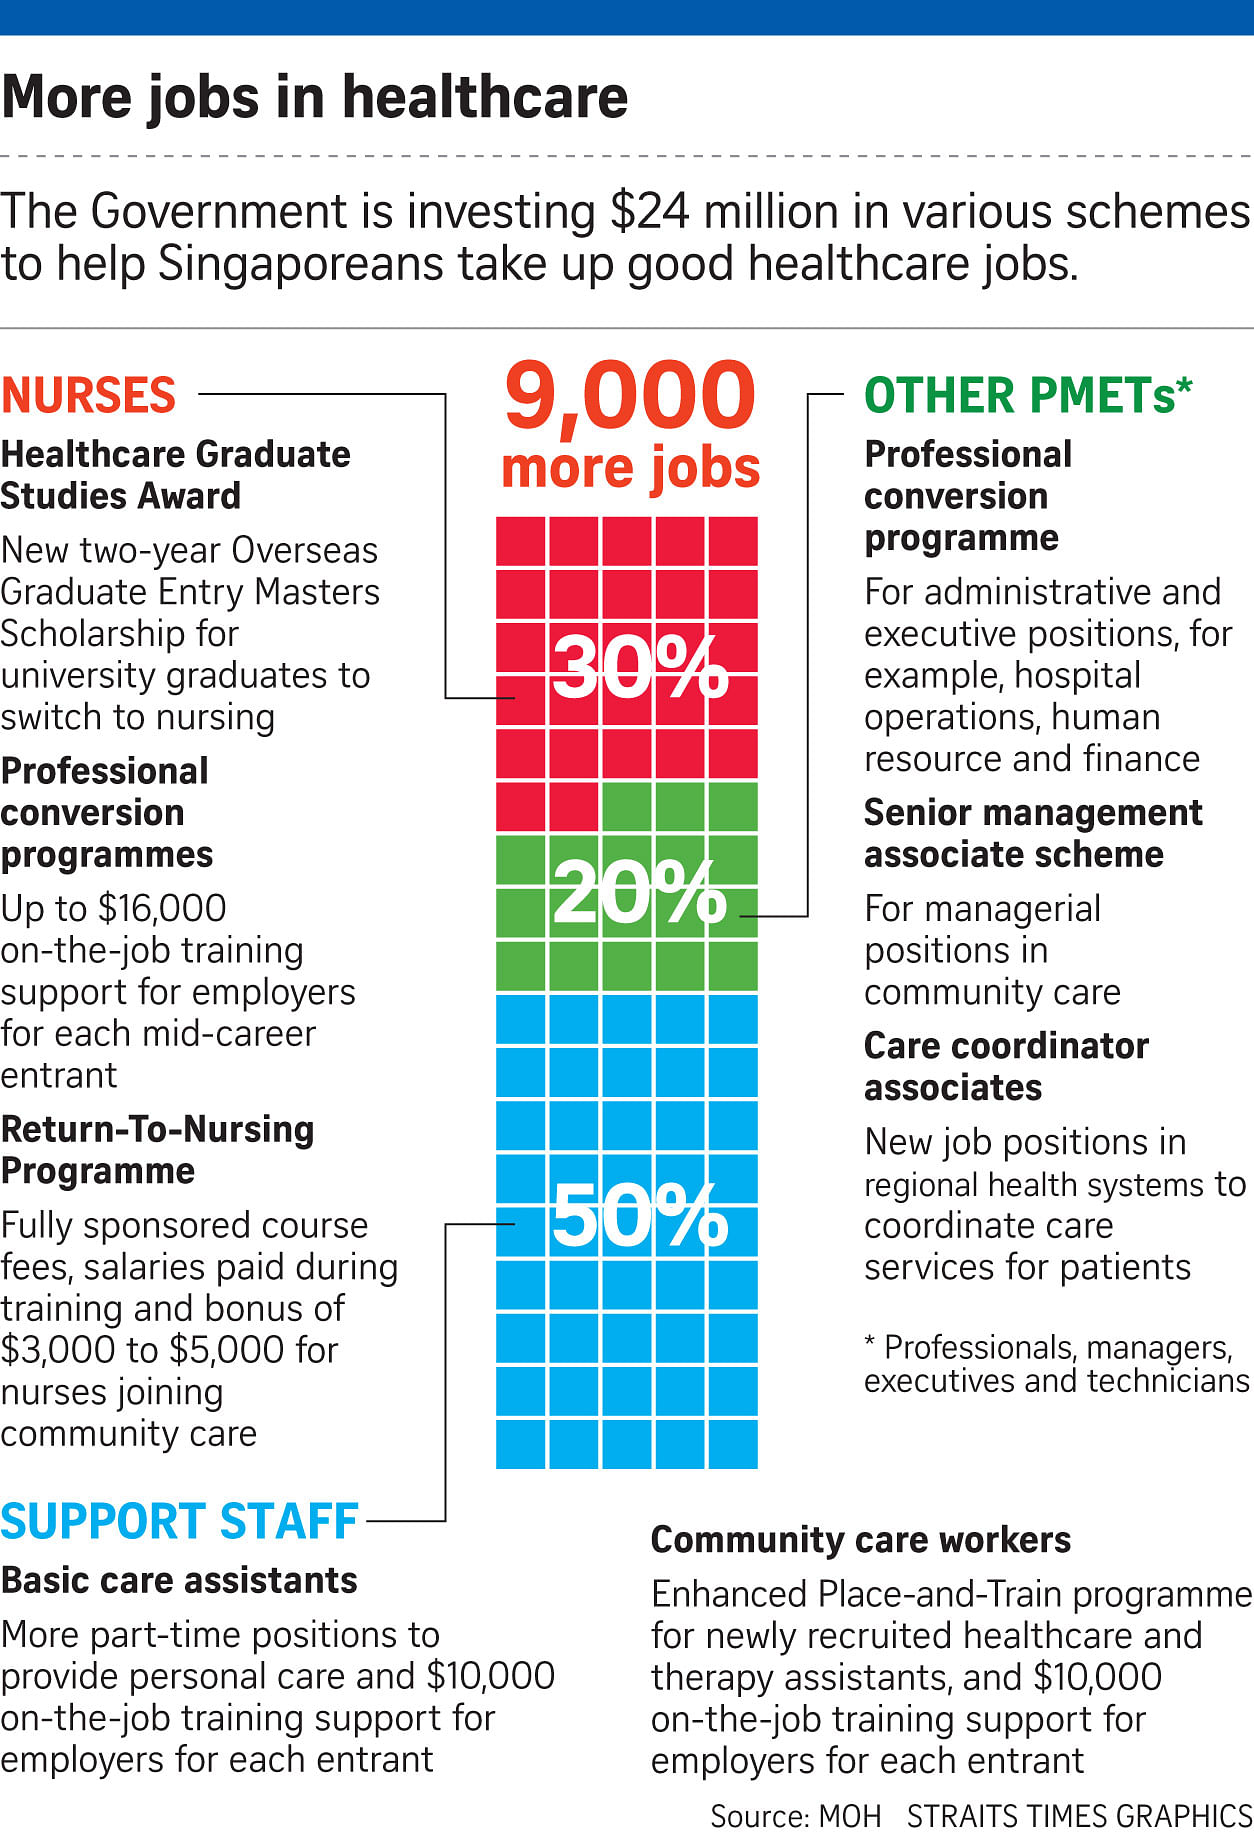 9,000 more healthcare workers needed, Health News & Top